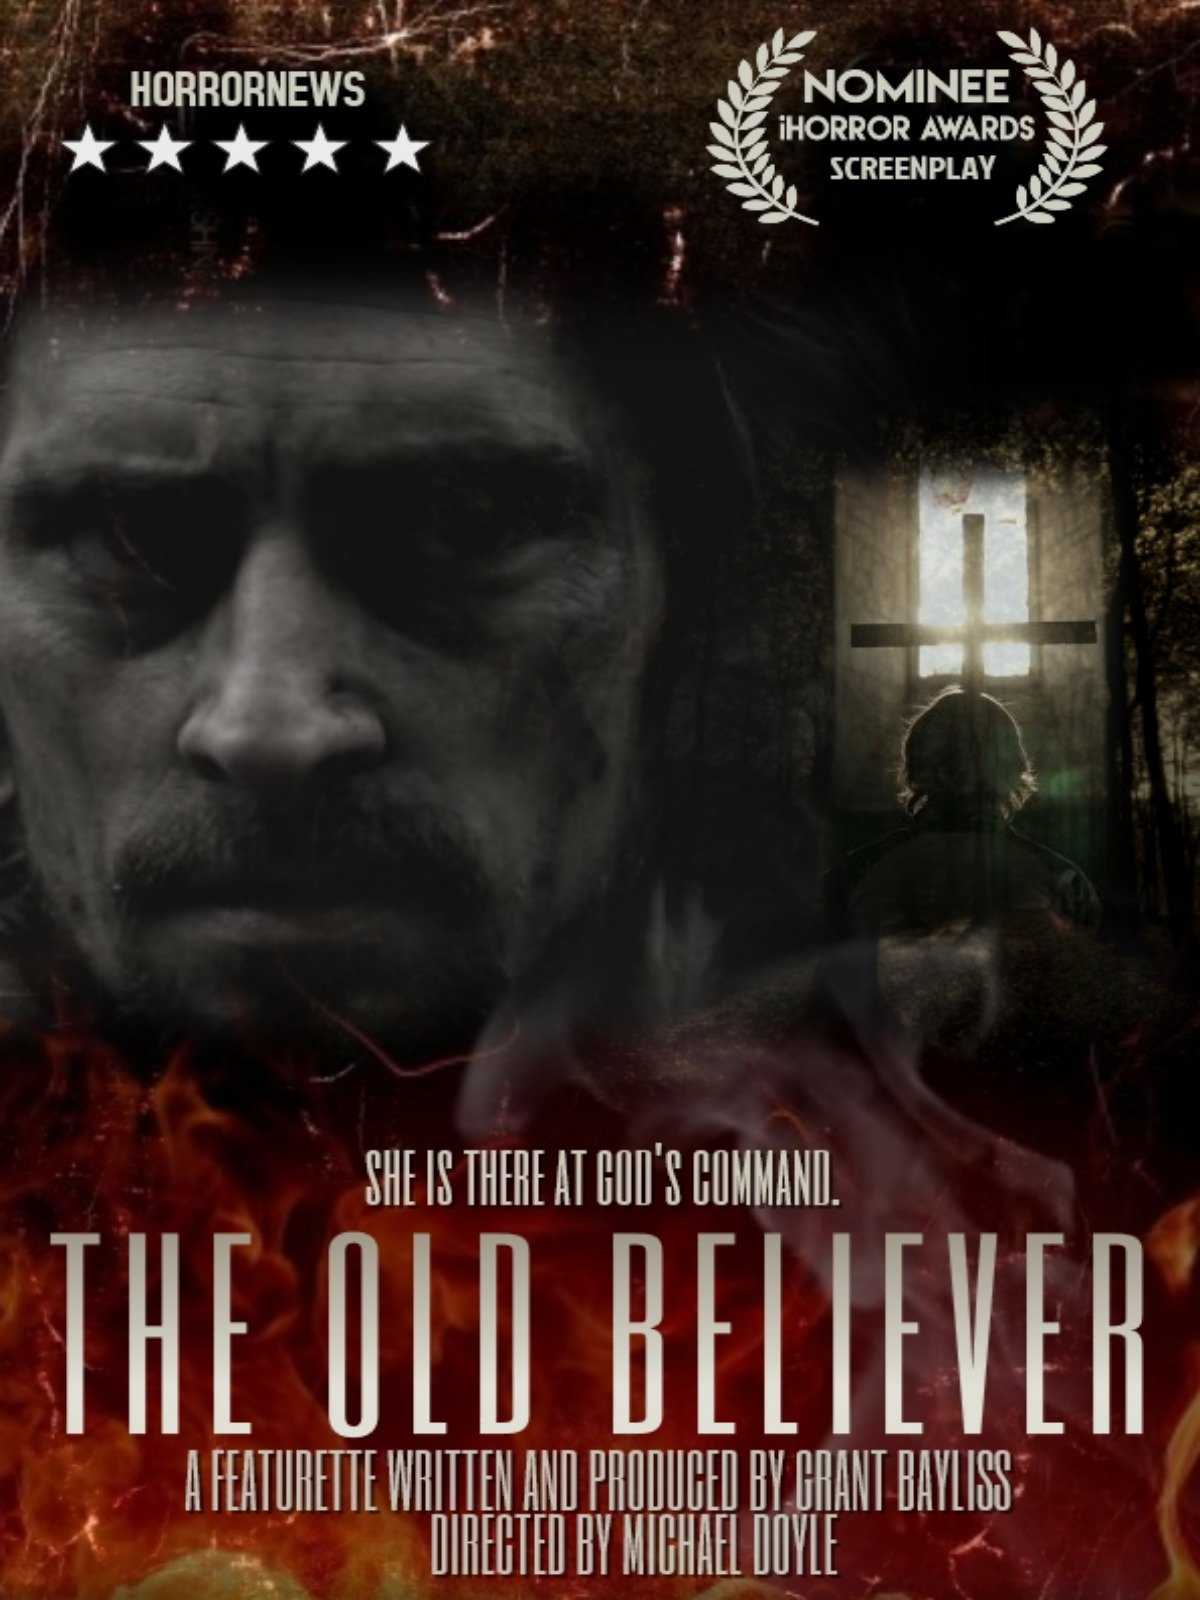 The Old Believer